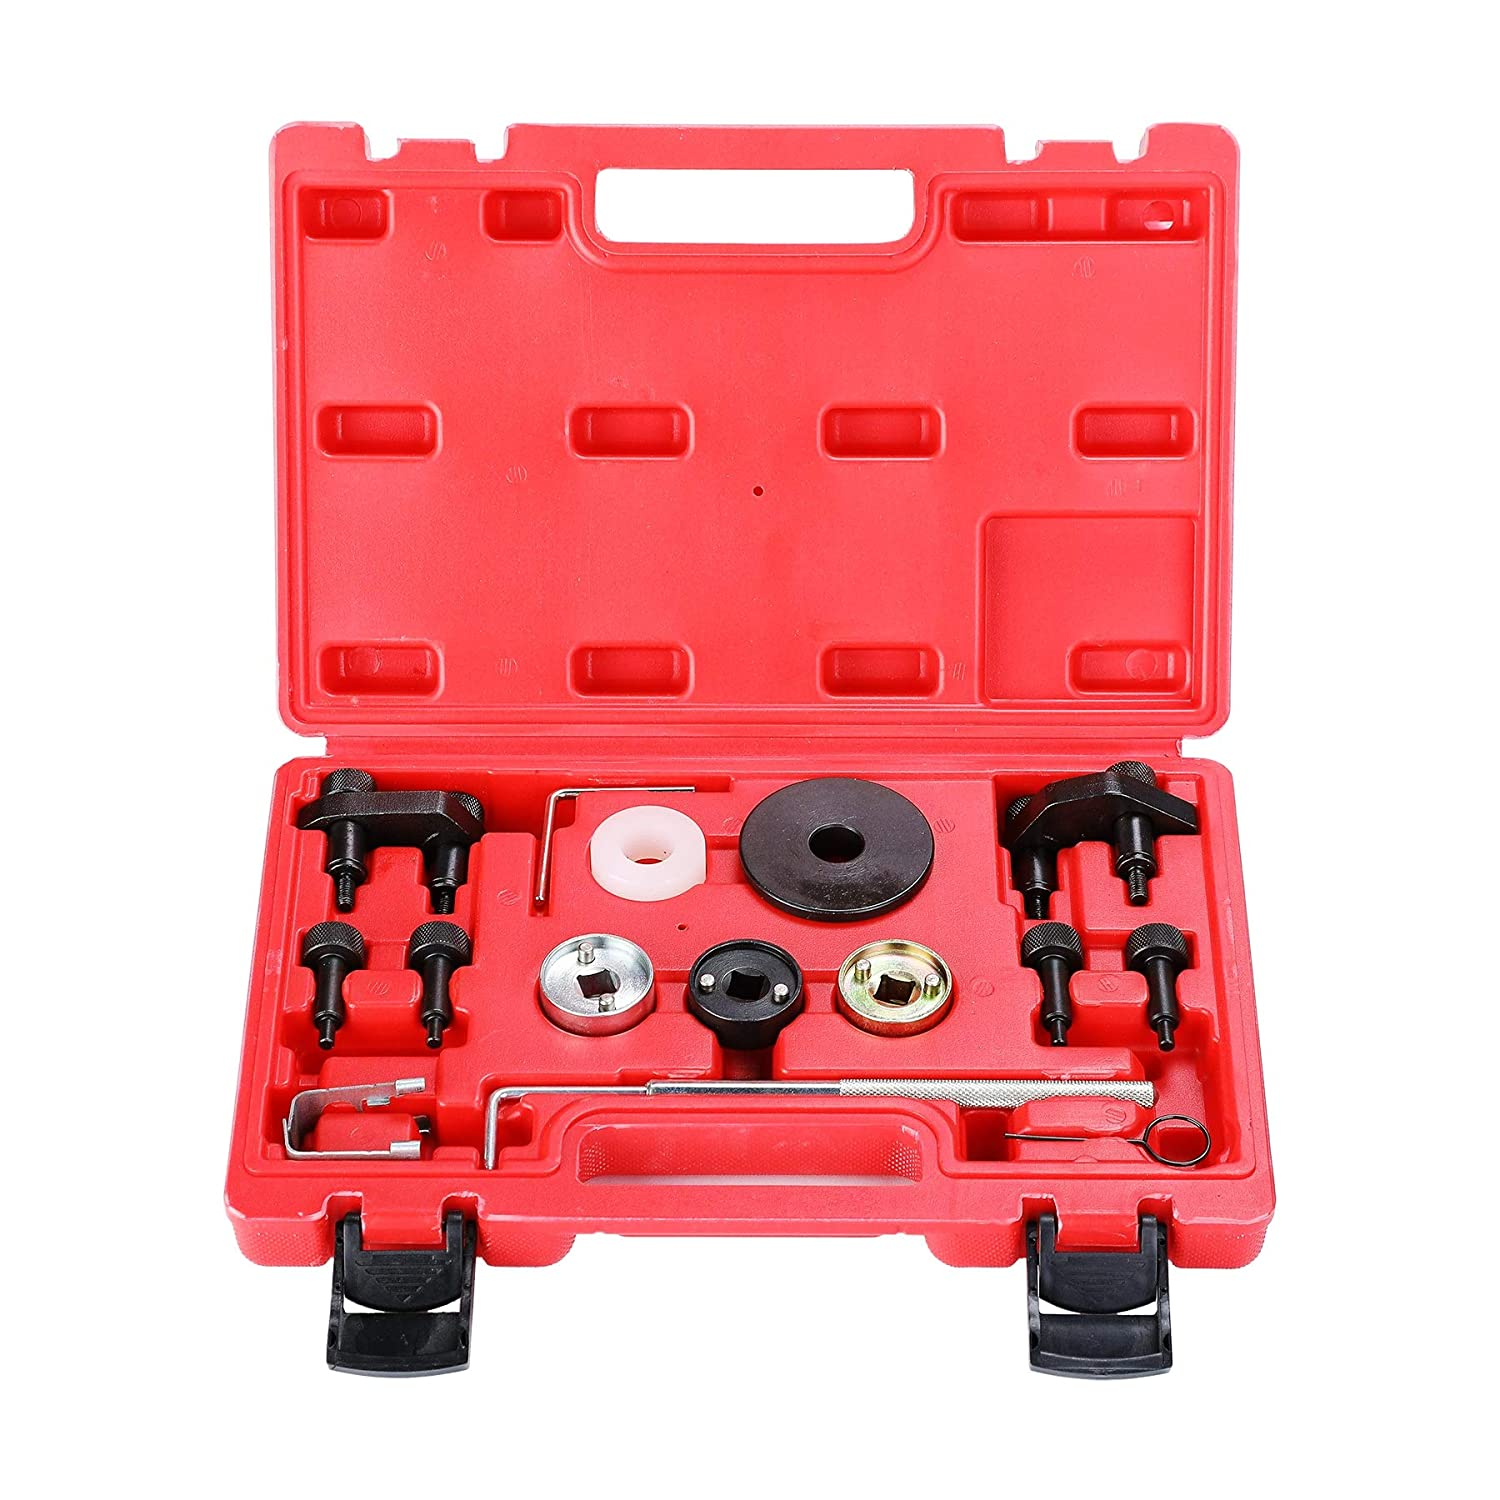 Orion Motor Tech Engine Camshaft Locking Alignment Timing Tool Kit fit Audi VW Skoda VAG 1.8 2.0 TFSI EA888 SF0233